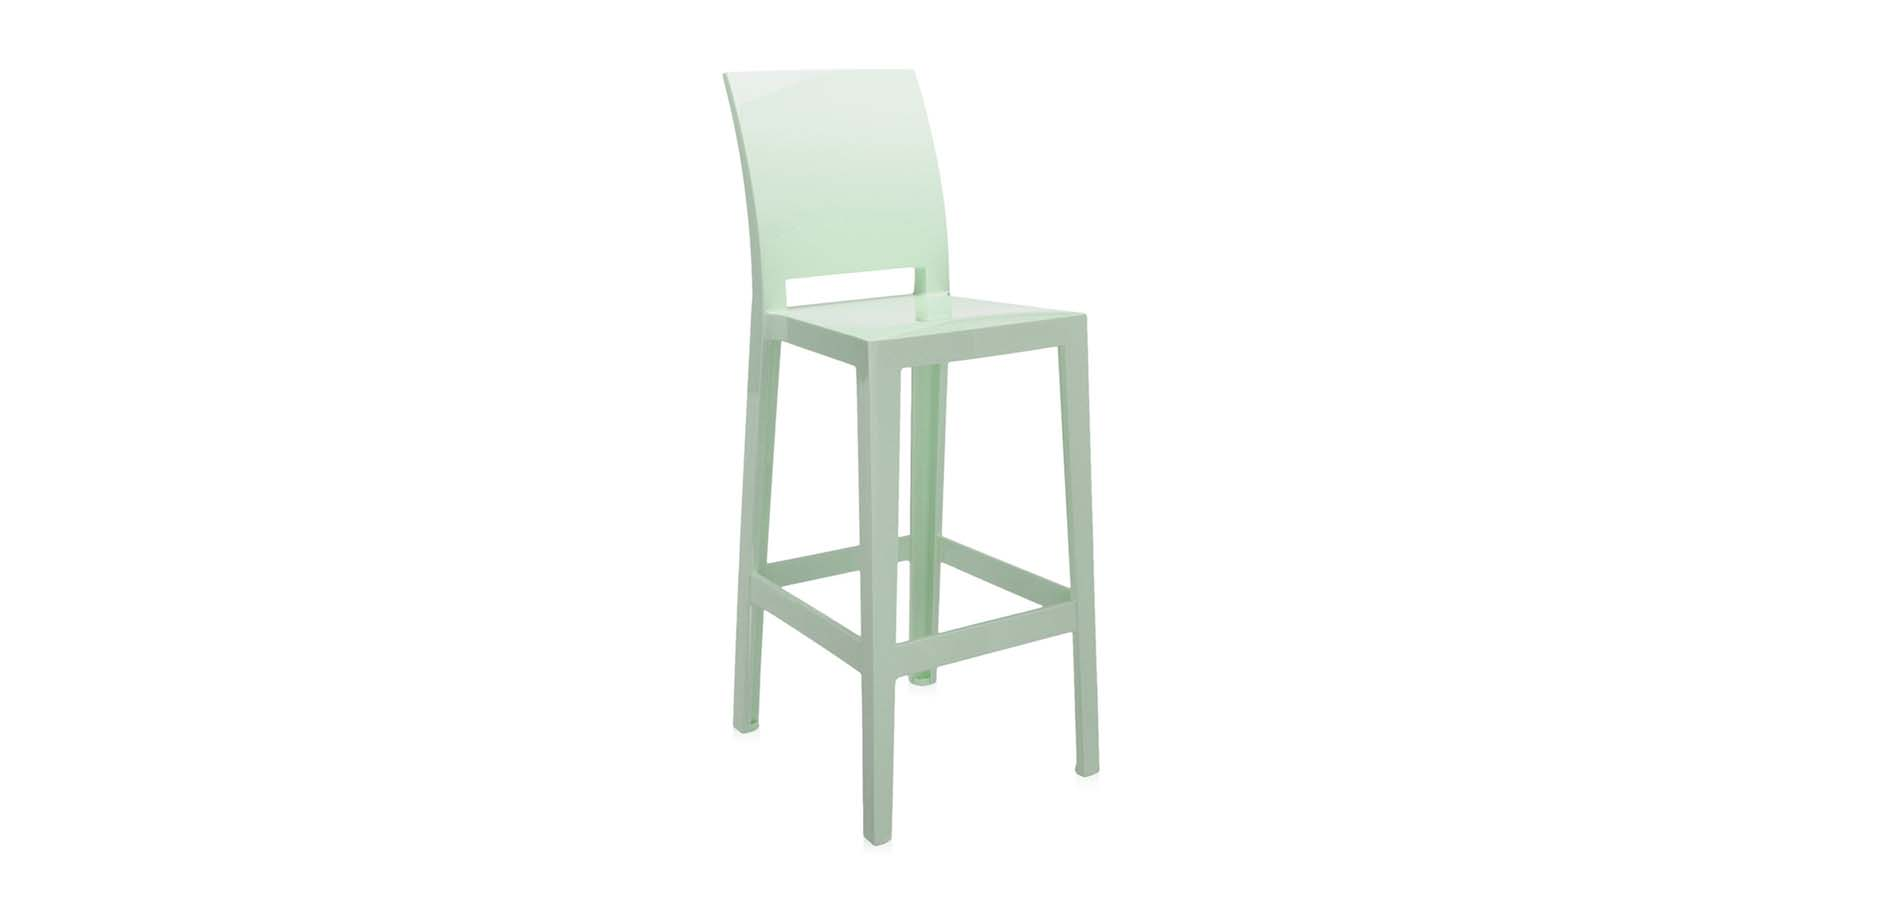 One More Please Bar Stool 110 Kartell Έ